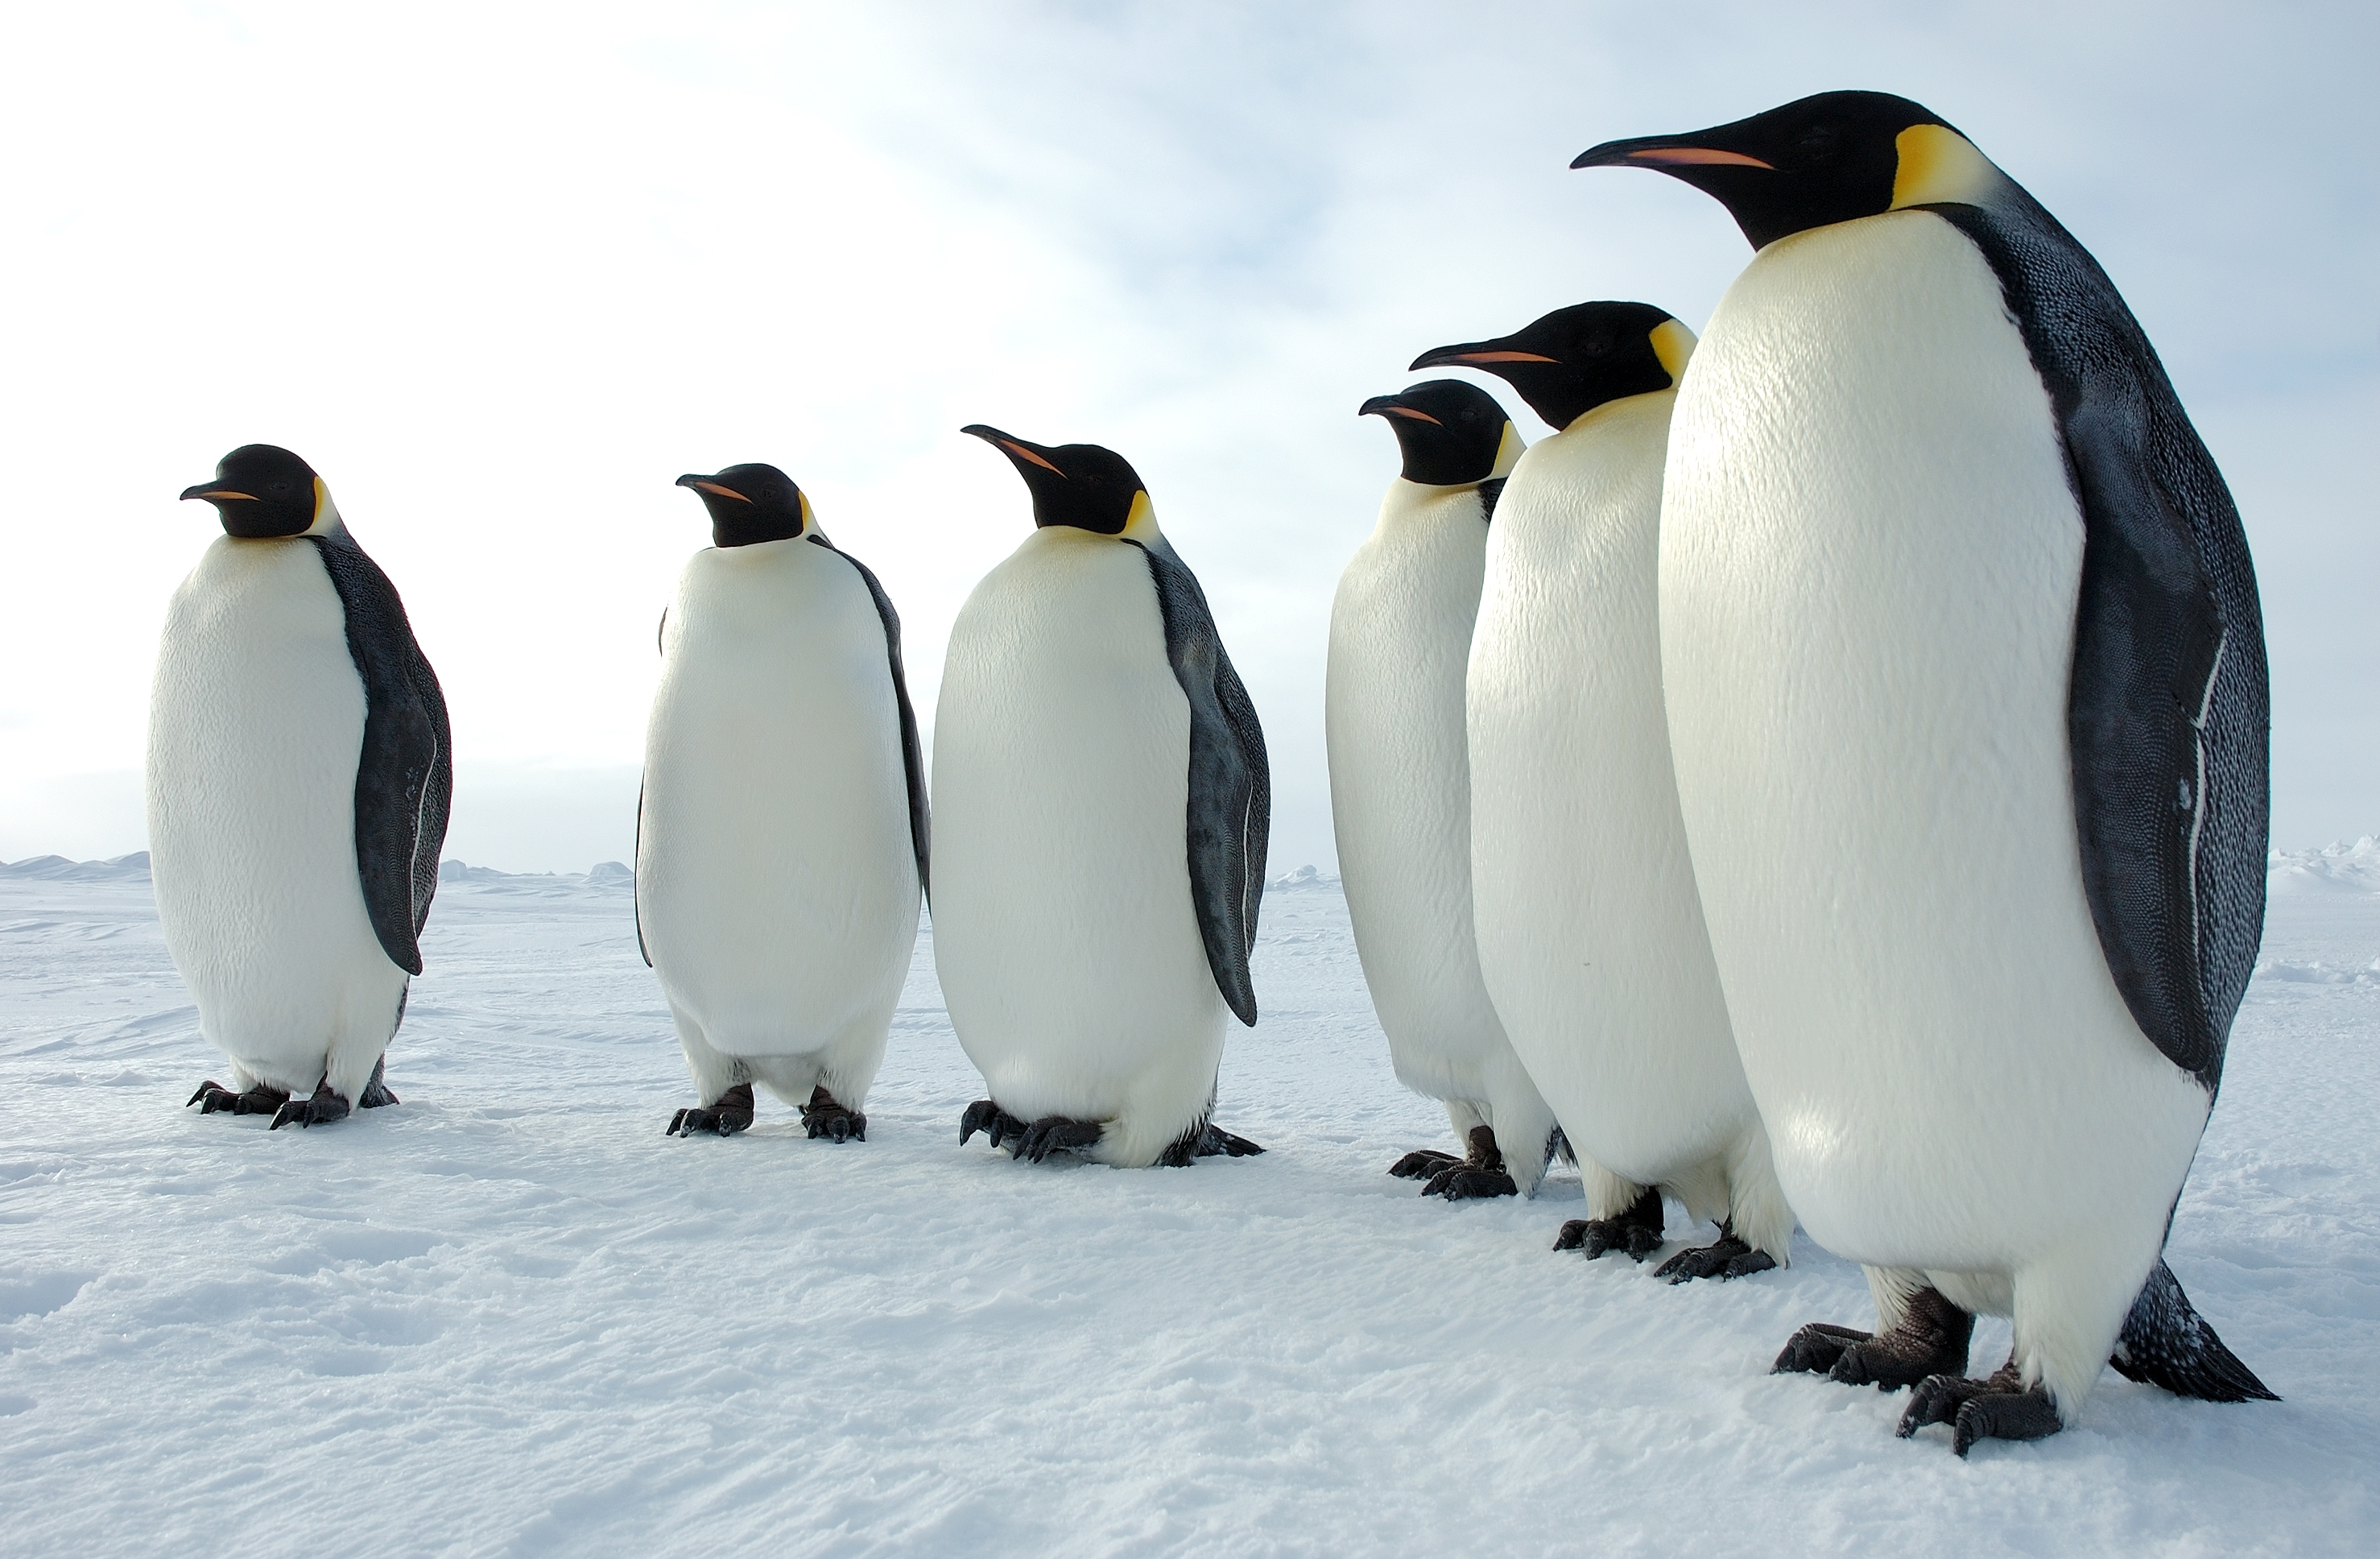 Emperor Penguins are the largest species of penguins.  They stand over 40 inches tall and weigh about 84 pounds.  The Emporer Penguins are one of the 12 species of birds in Antarctica.  Photo by Glenn Grant, National Science Foundation